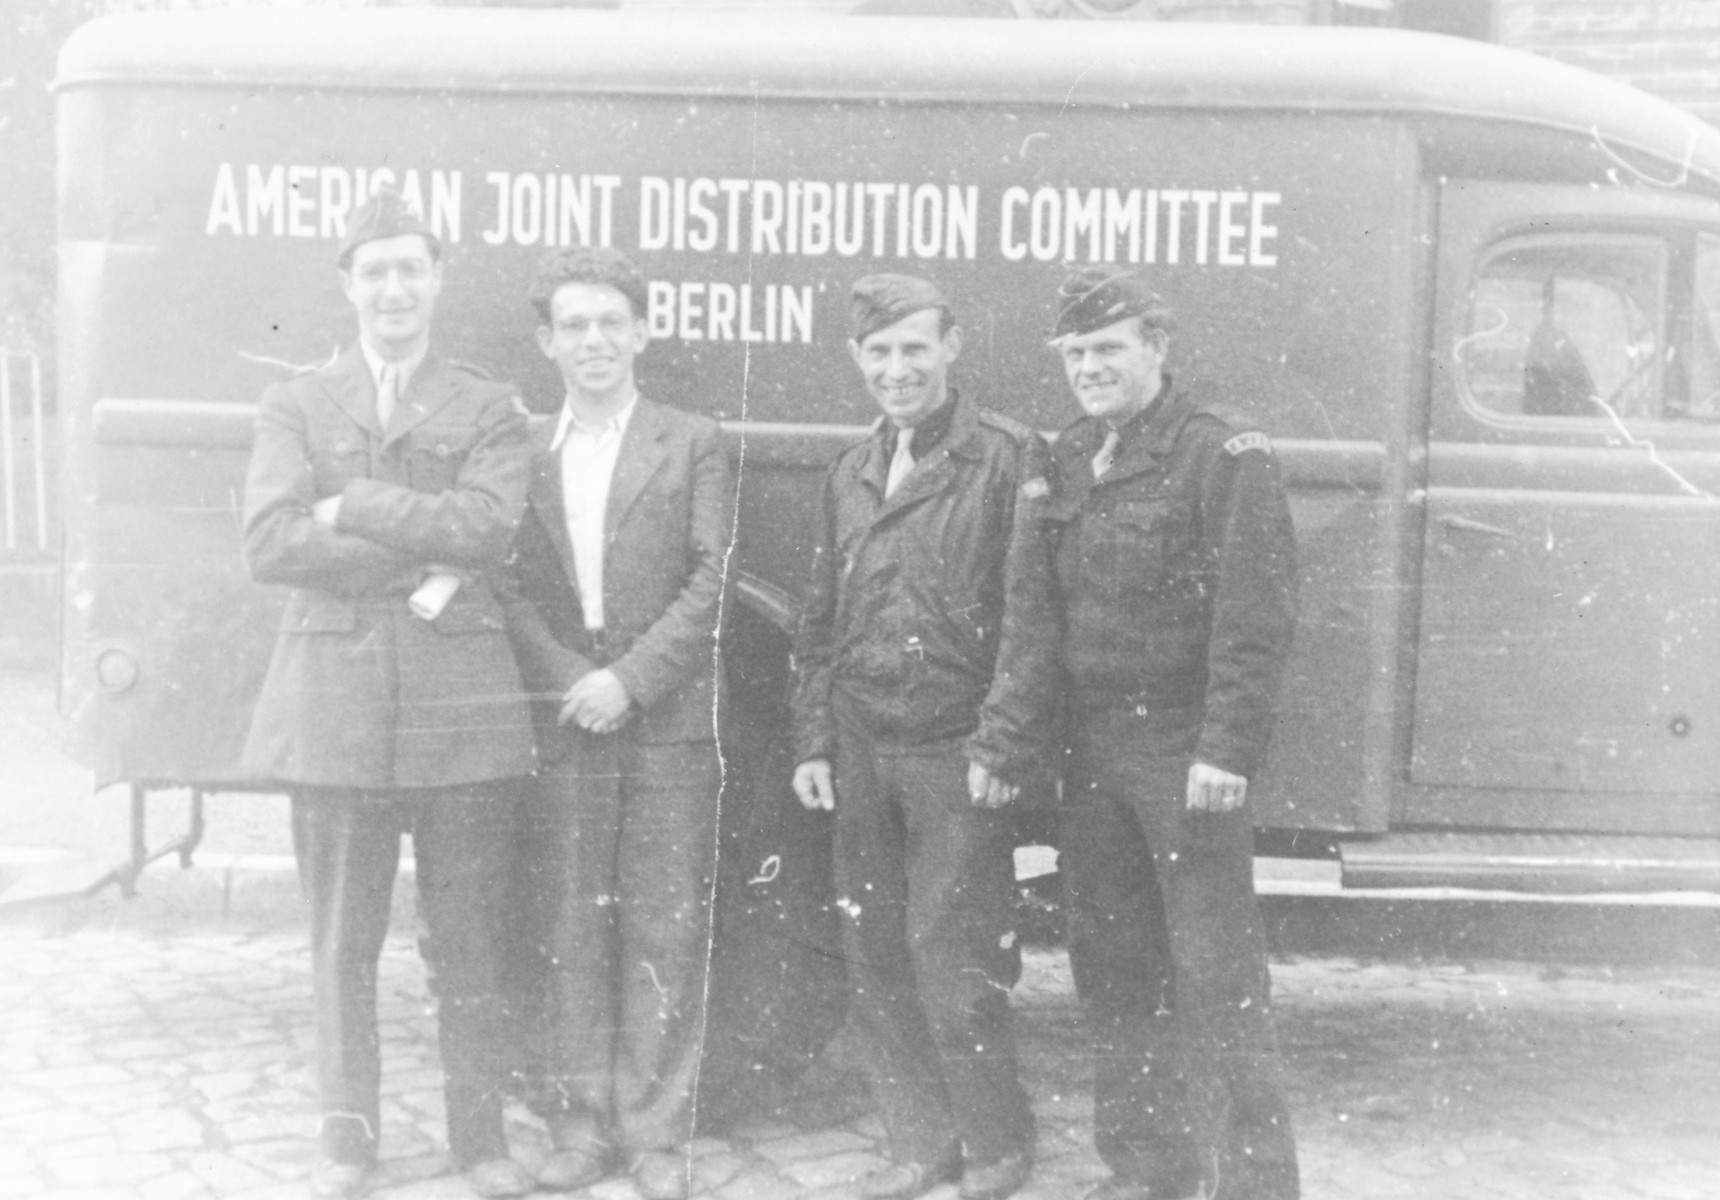 Four aid workers stand in front of an American Joint Distribution Committee truck in Berlin.  Heinz (now Henry) Rusheen is at the far right.  Himself a DP, he had been in the Riga ghetto and Stutthof concentration camp.